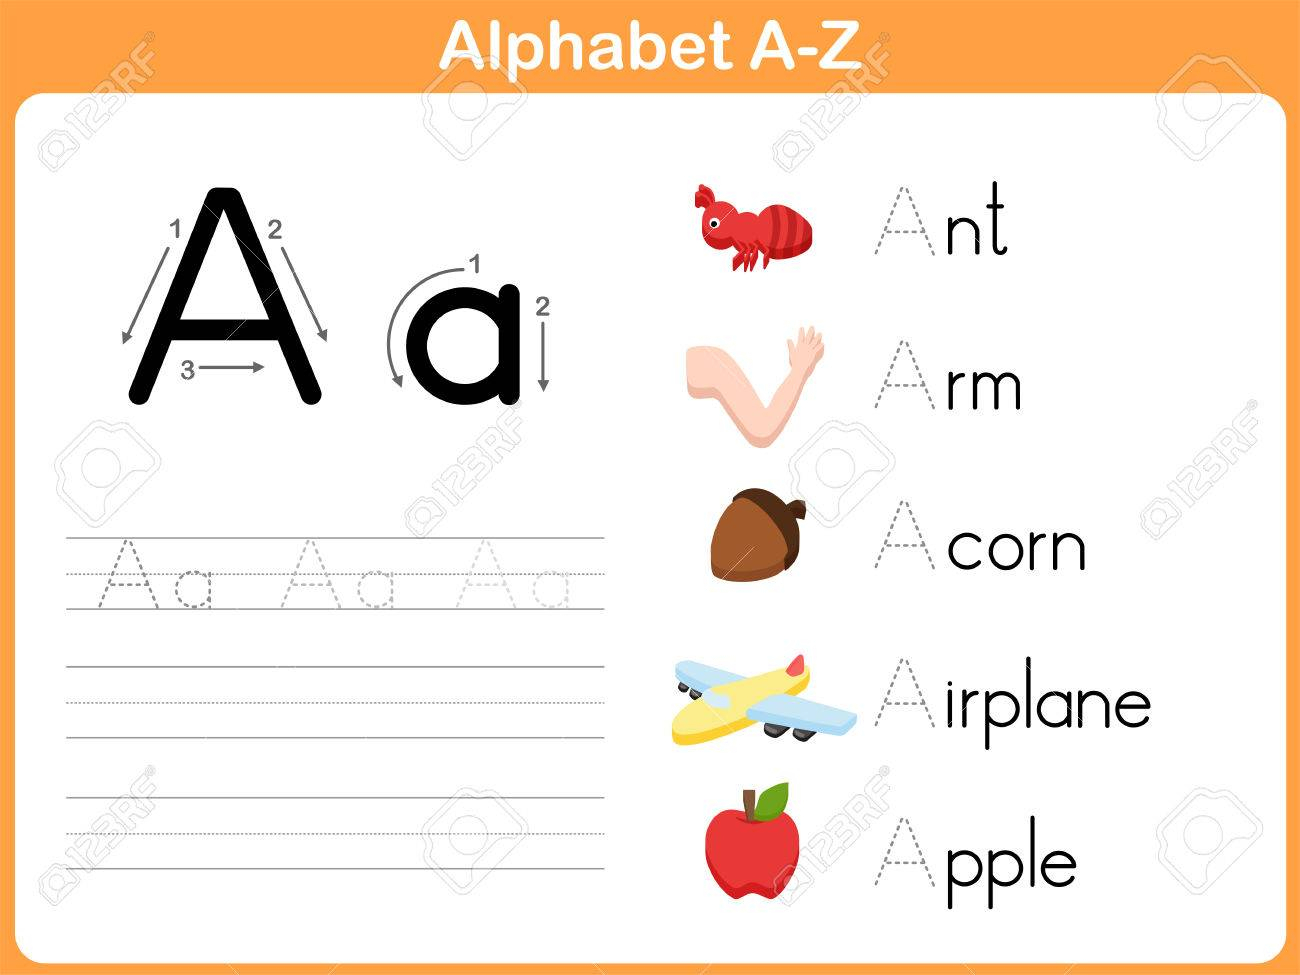 Alphabet Tracing Worksheet: Writing A-Z with regard to A-Z Alphabet Tracing Worksheets